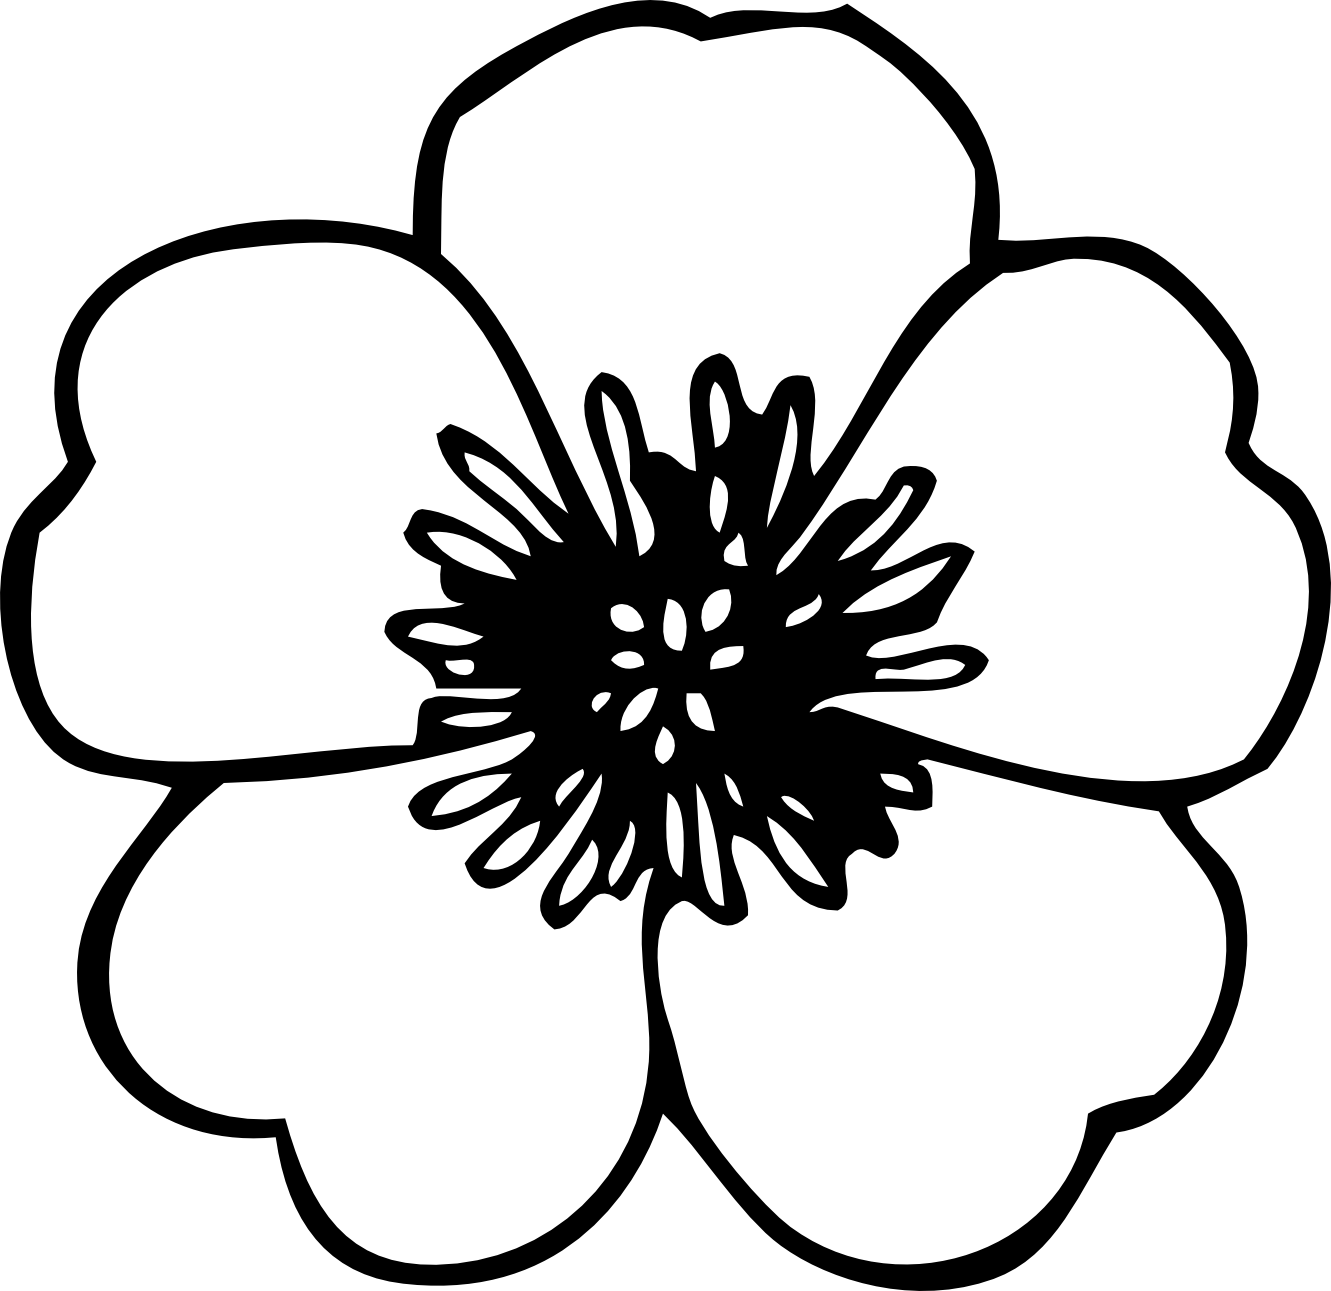 simple flower clipart black and white clipart panda free clipart rh clipartpanda com lotus flower clipart black white lotus flower clipart black white